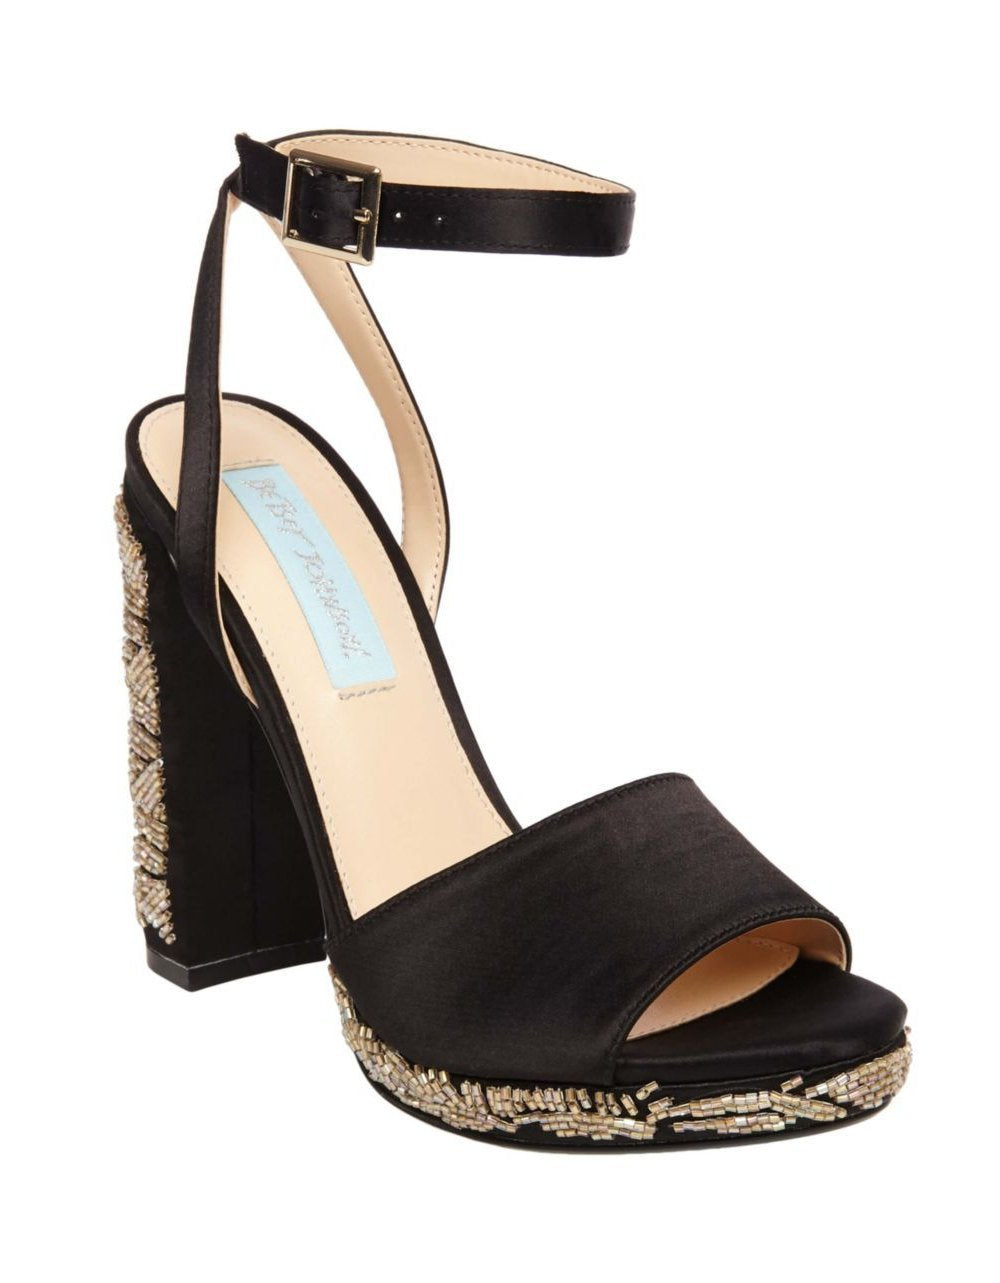 SB-CARIN BLACK SATIN - SHOES - Betsey Johnson